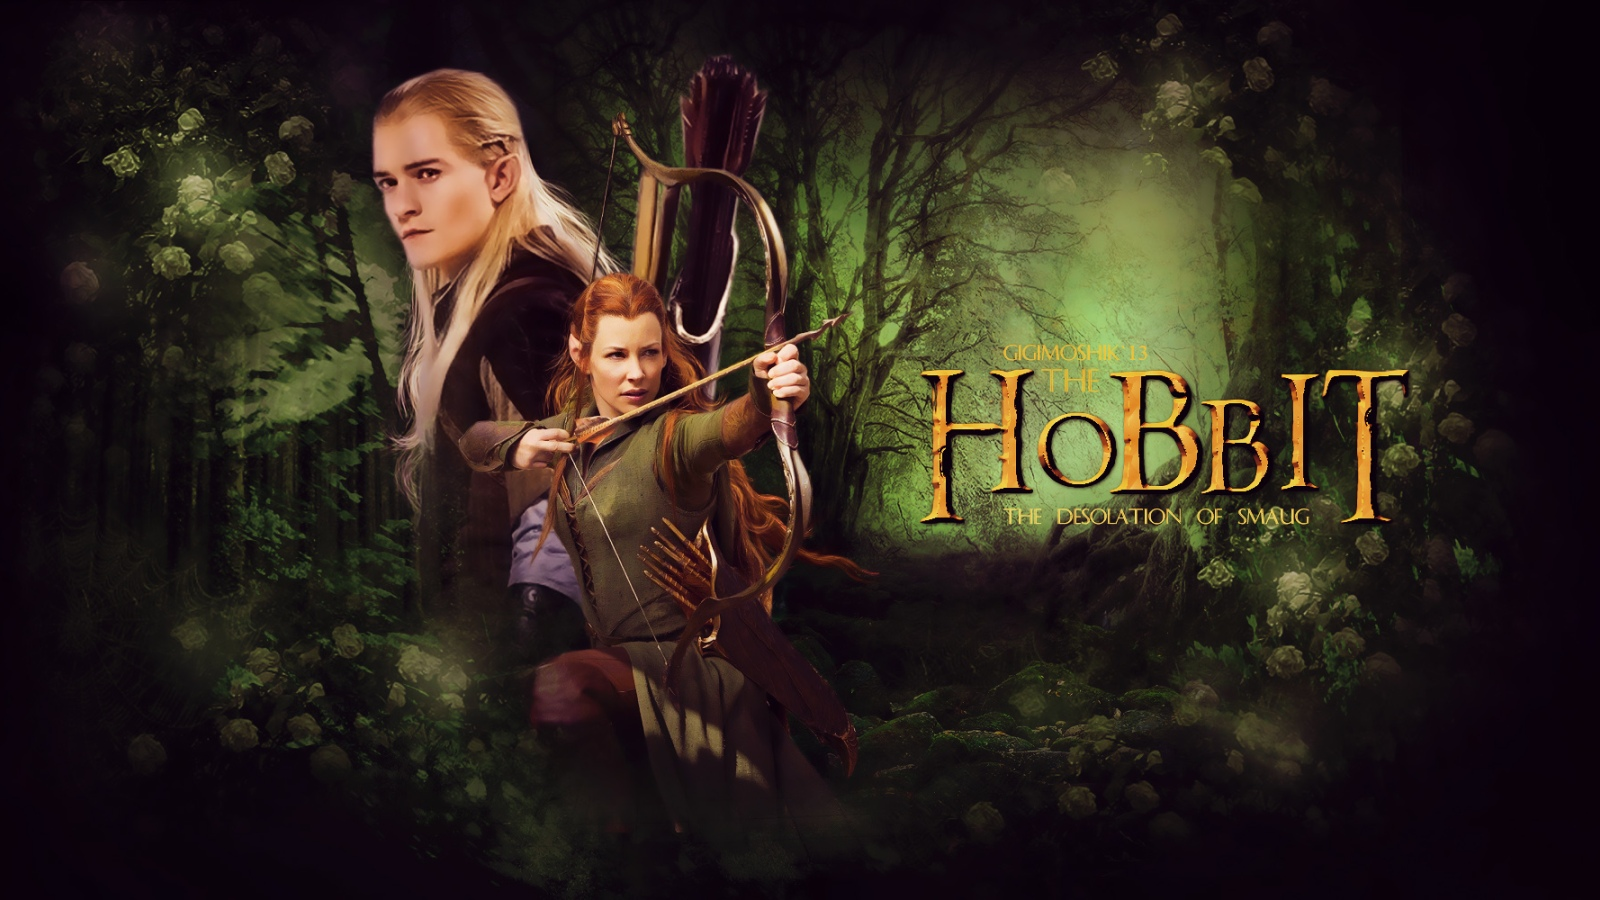 Legolas and Tauriel Nerdist